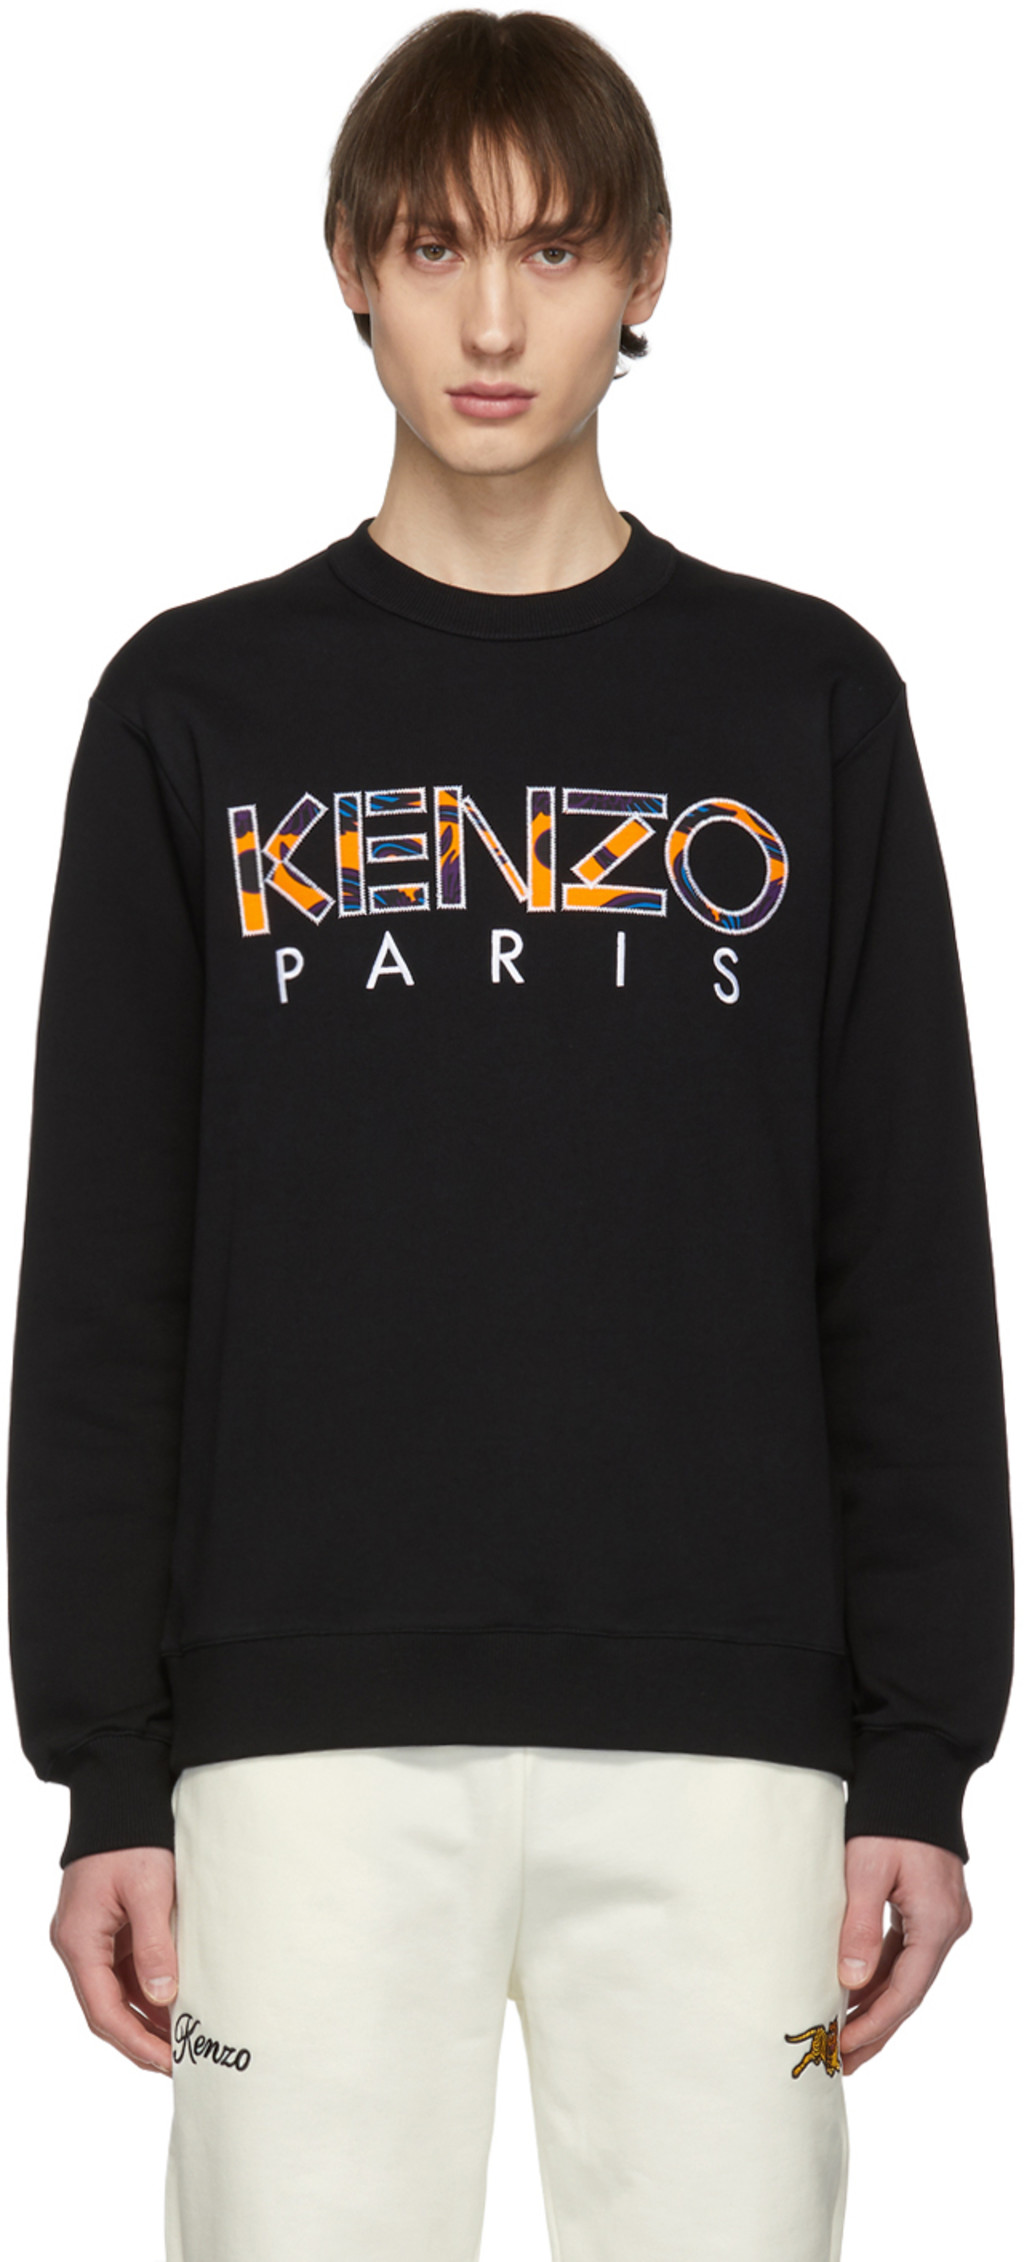 Kenzo for Men SS19 Collection   SSENSE 0052caf227a